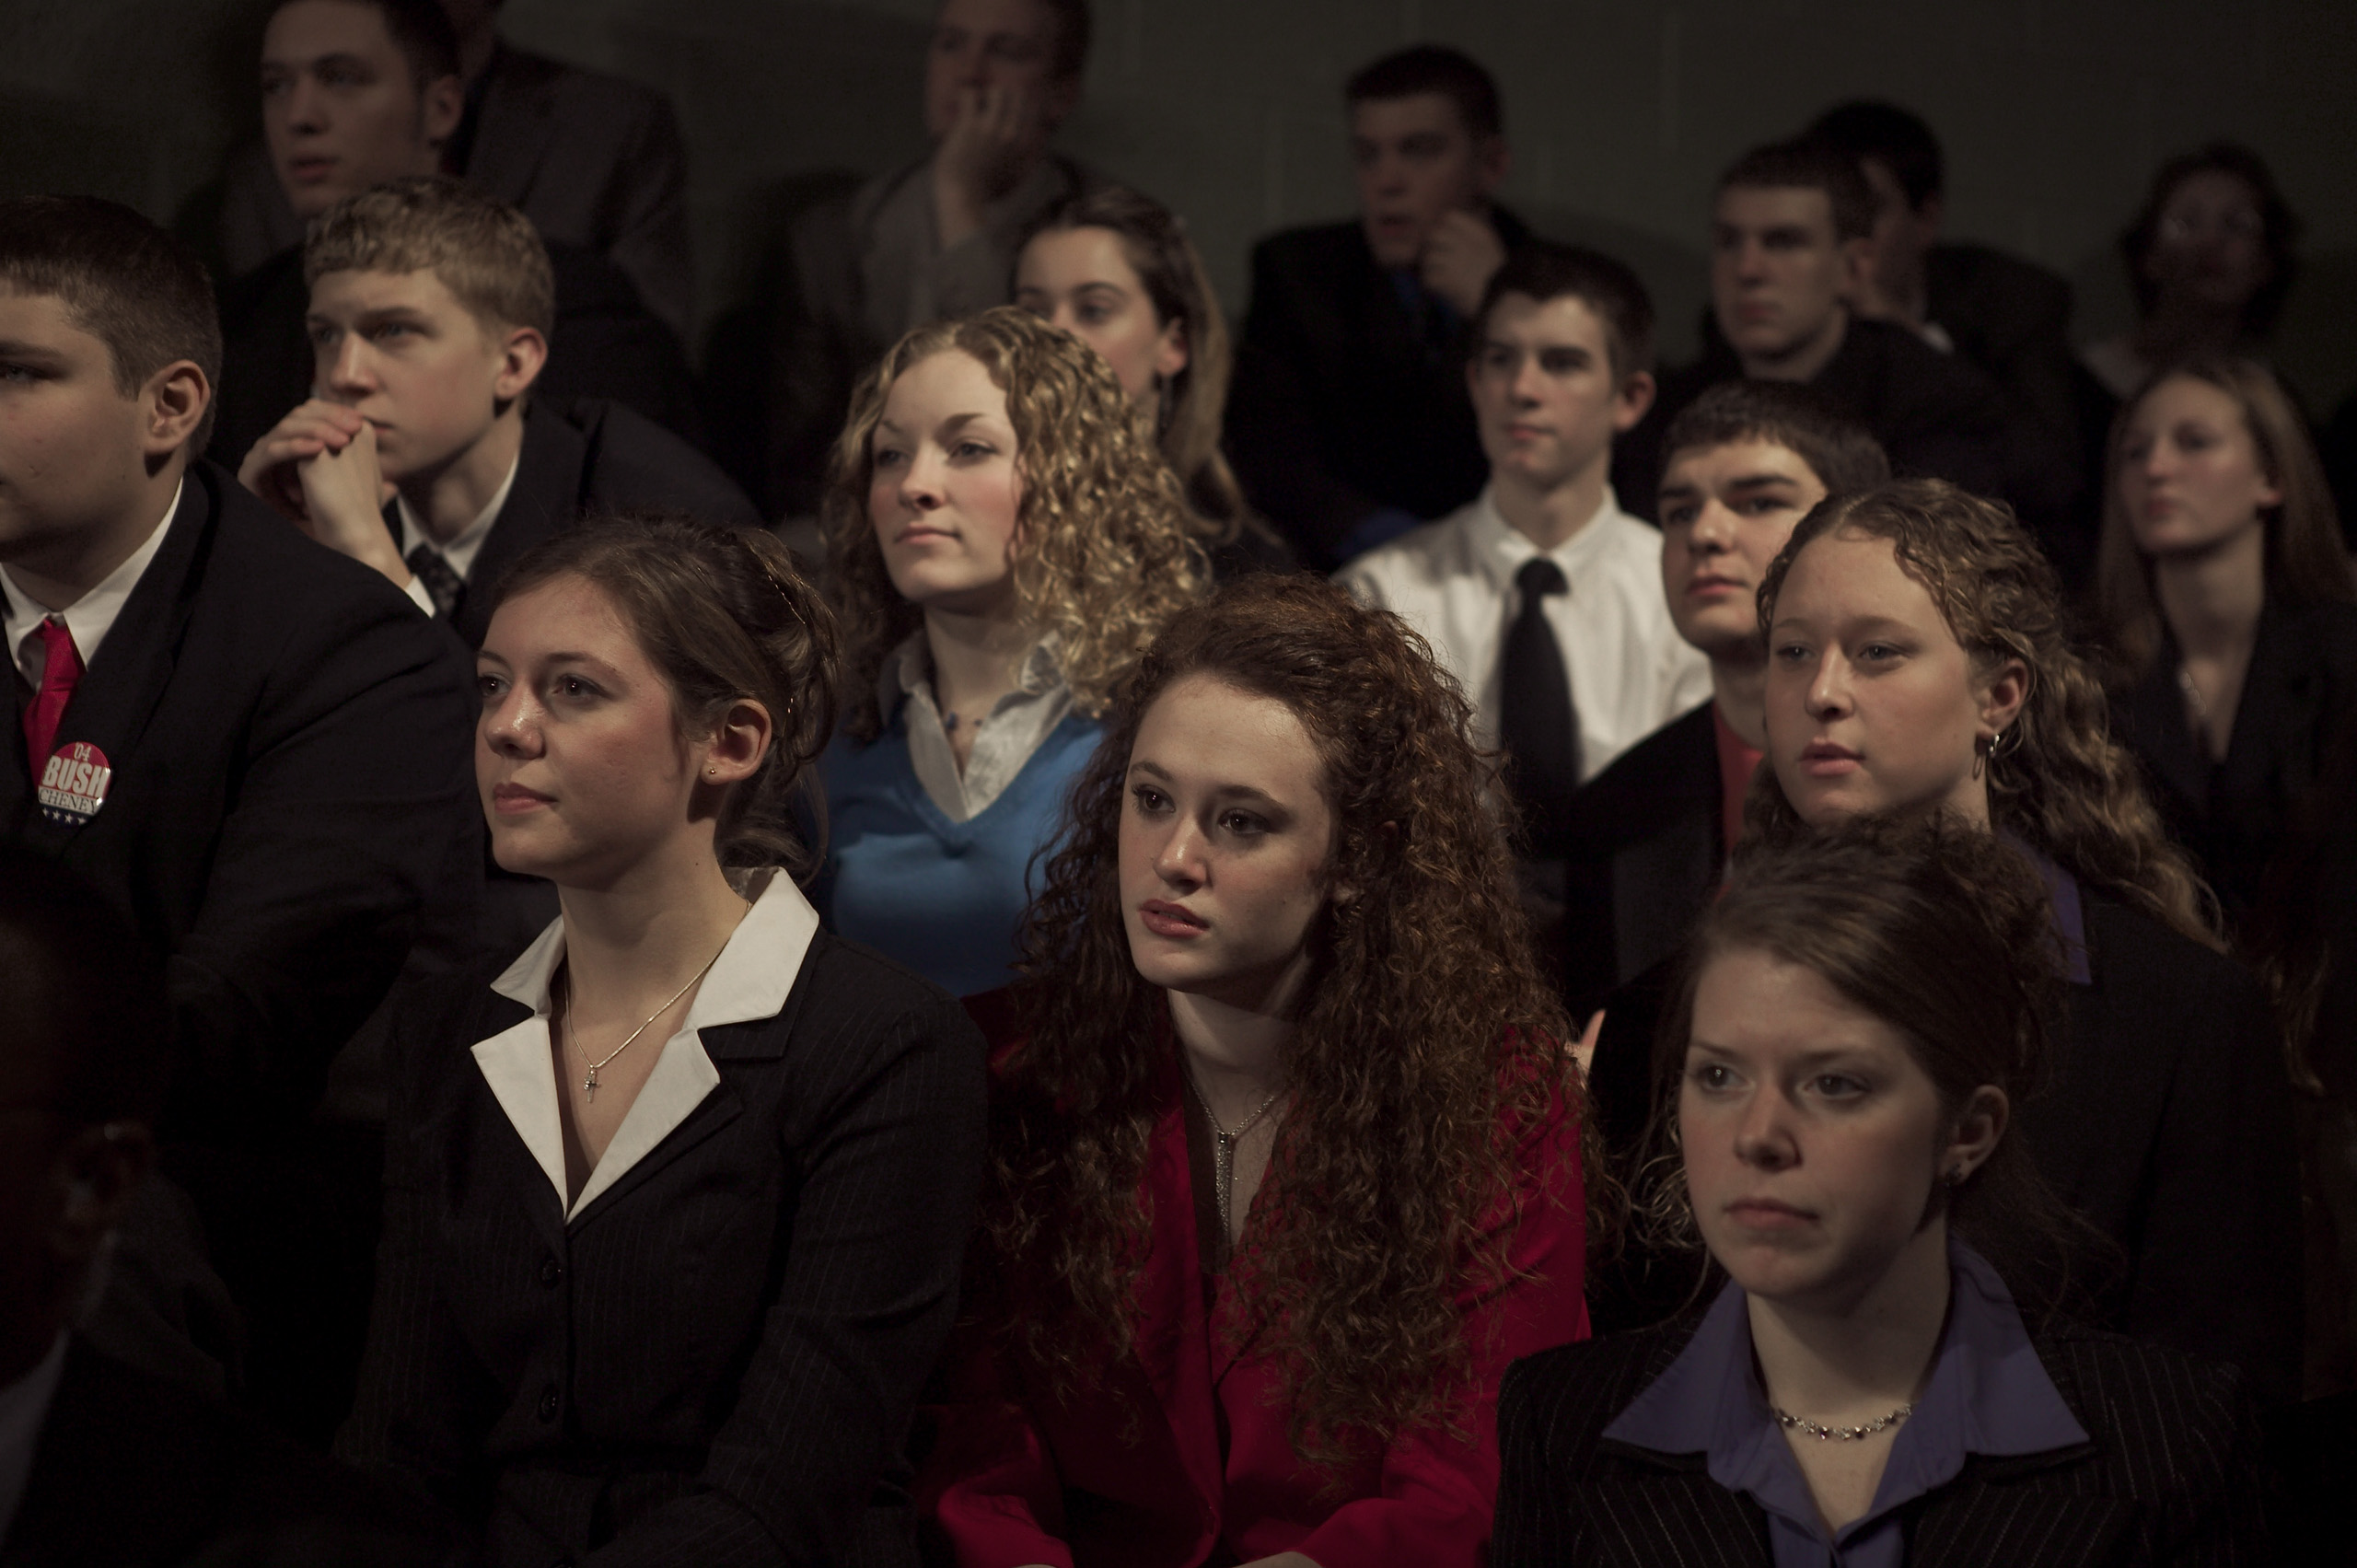 High school students listen to U.S. President George W. Bush speak about his Administration's push for better jobs through education, while at the Central Dauphin High School in Harrisburg, Pennsylvania, Feb. 12, 2004.